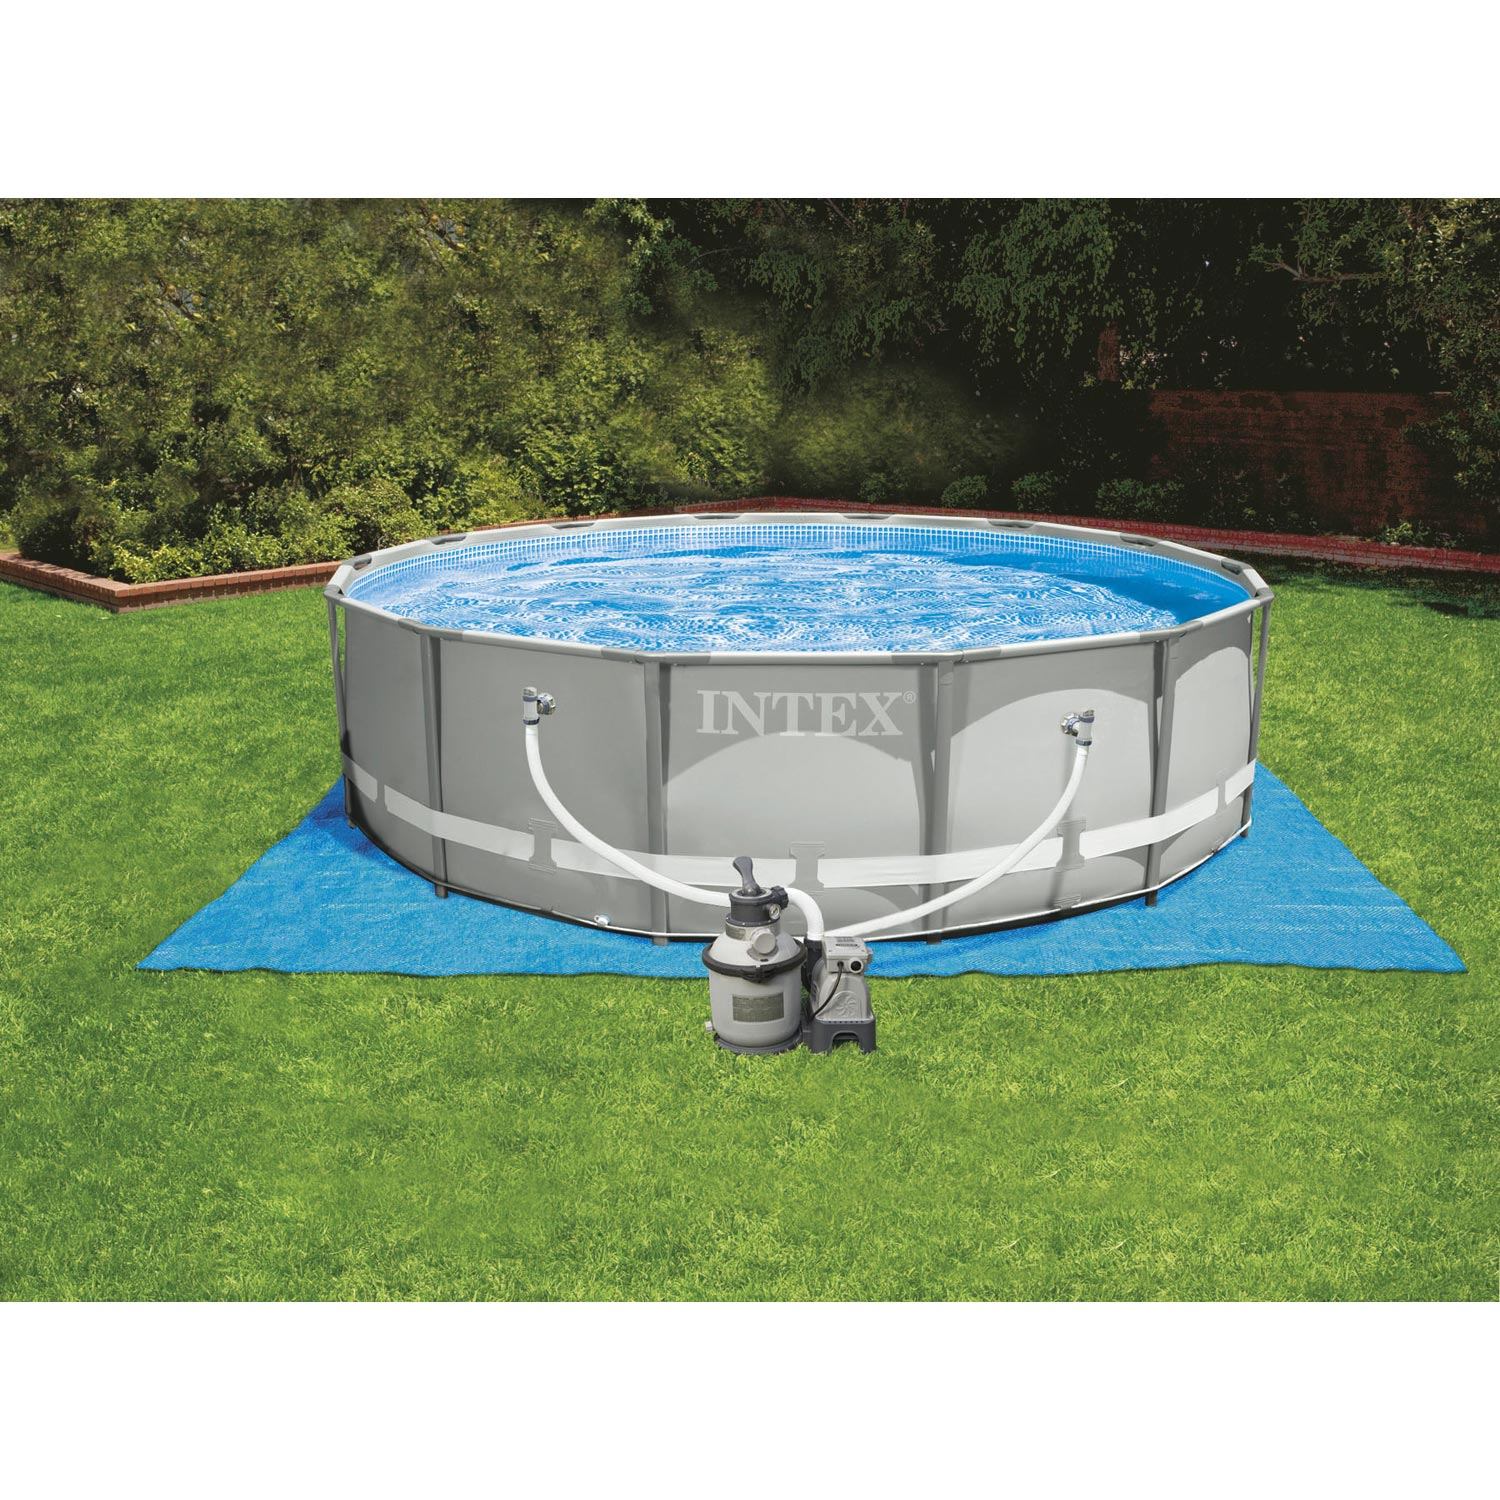 Piscine hors sol autoportante tubulaire ultra frame intex for Auchan piscine tubulaire